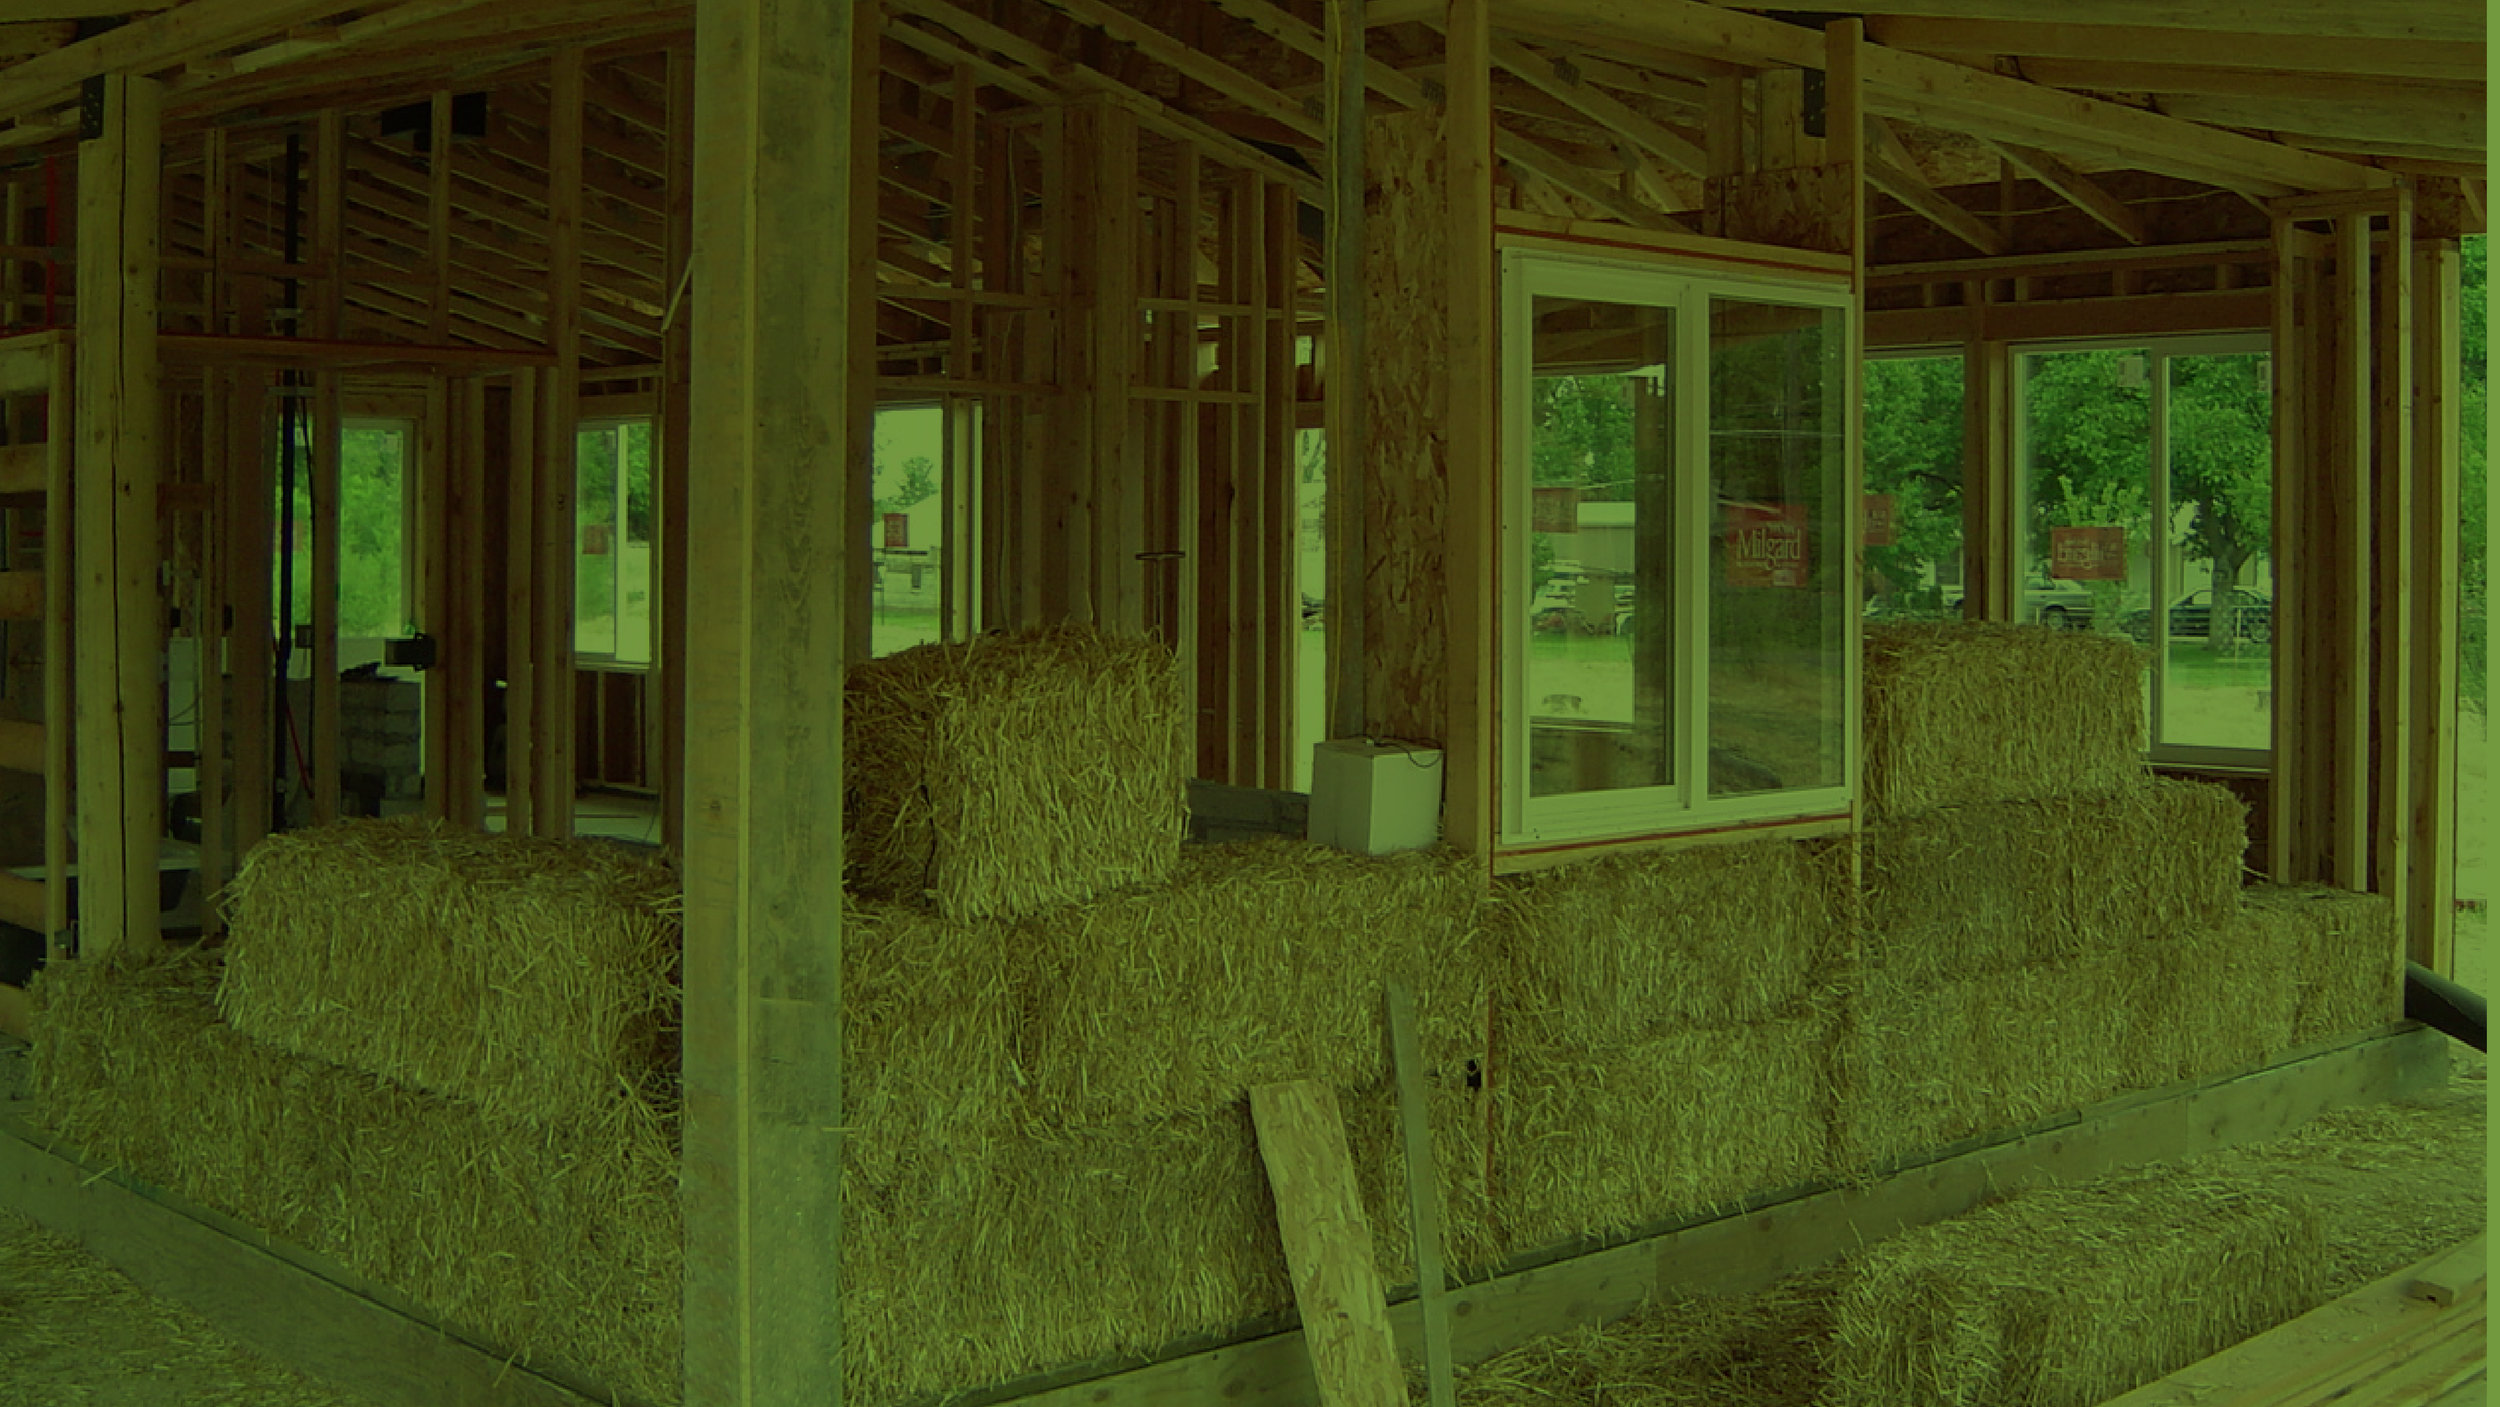 Host a Straw Bale Building Workshop - Cut costs in your new home project